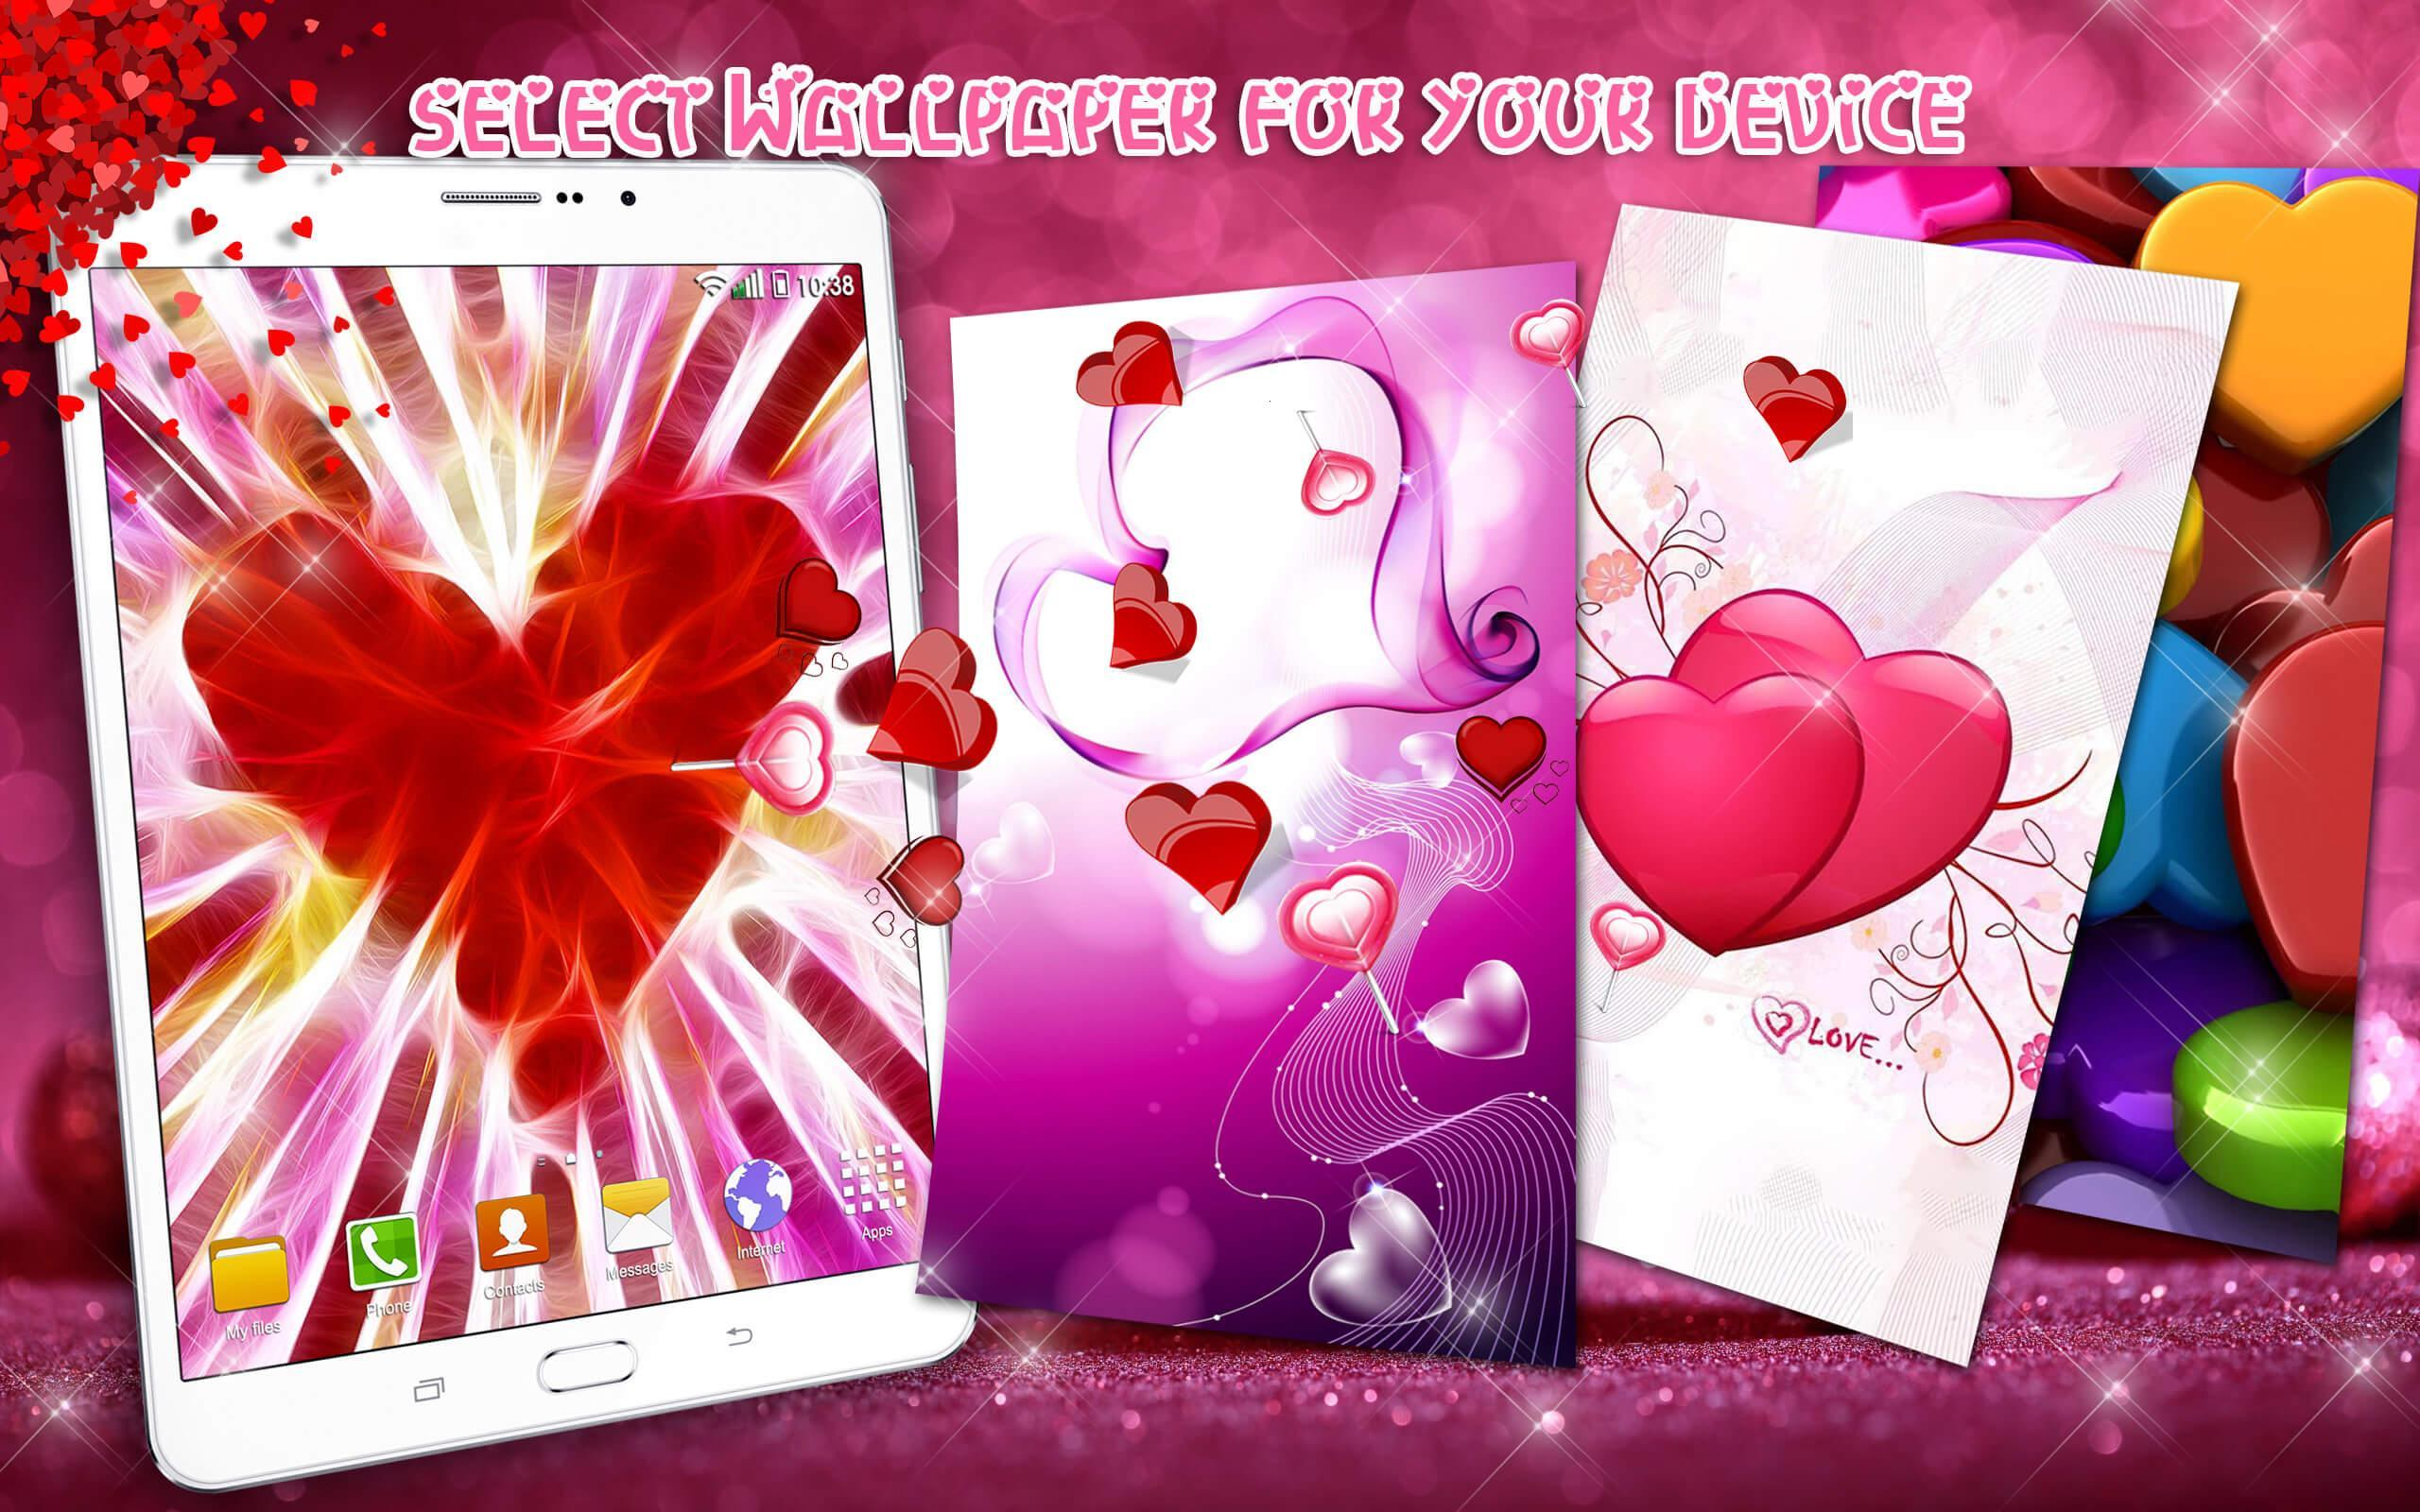 Heart Live Wallpaper 💖 Cute Images of Love Hearts for Android - APK